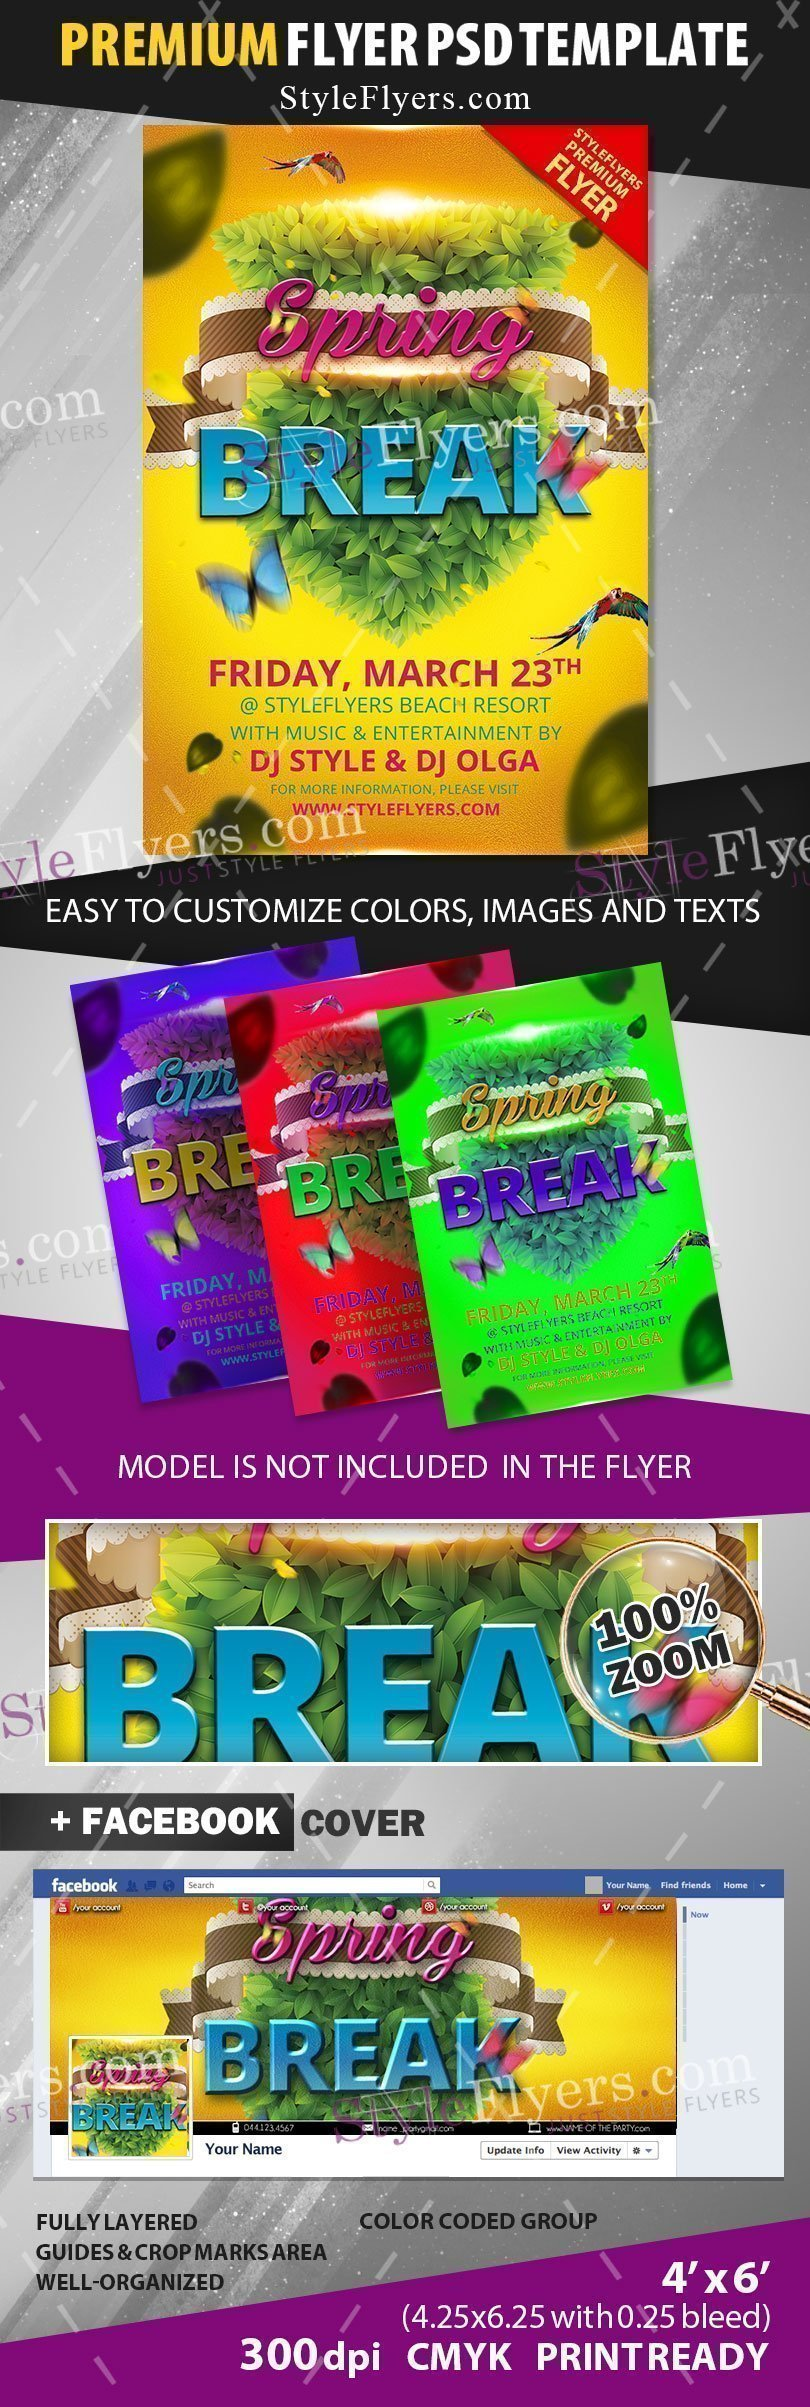 preview_Spring_breake_Flyer_premium_template